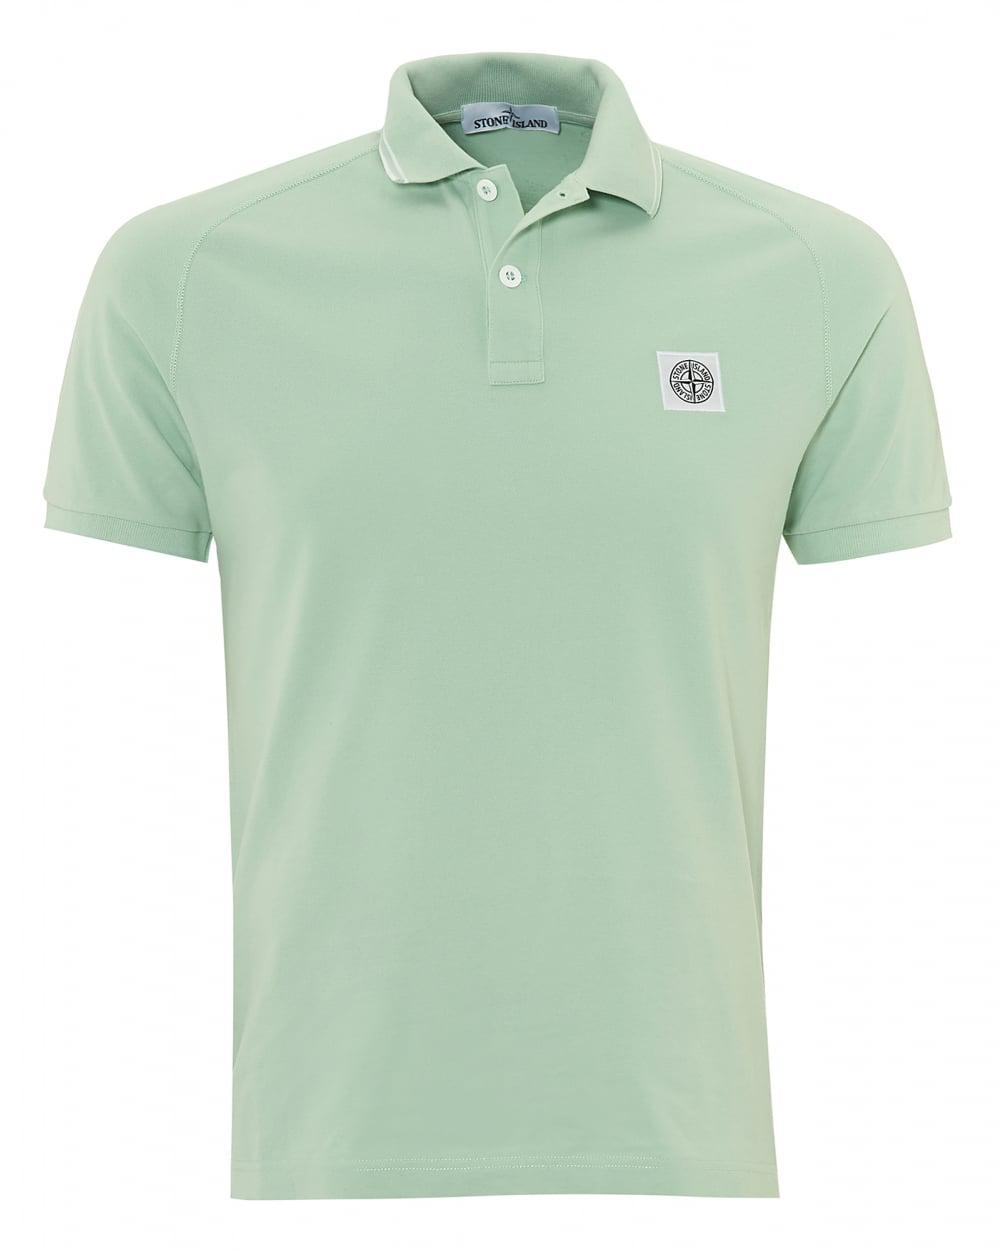 Lyst stone island mint compass logo polo green chest for Mint color polo shirt